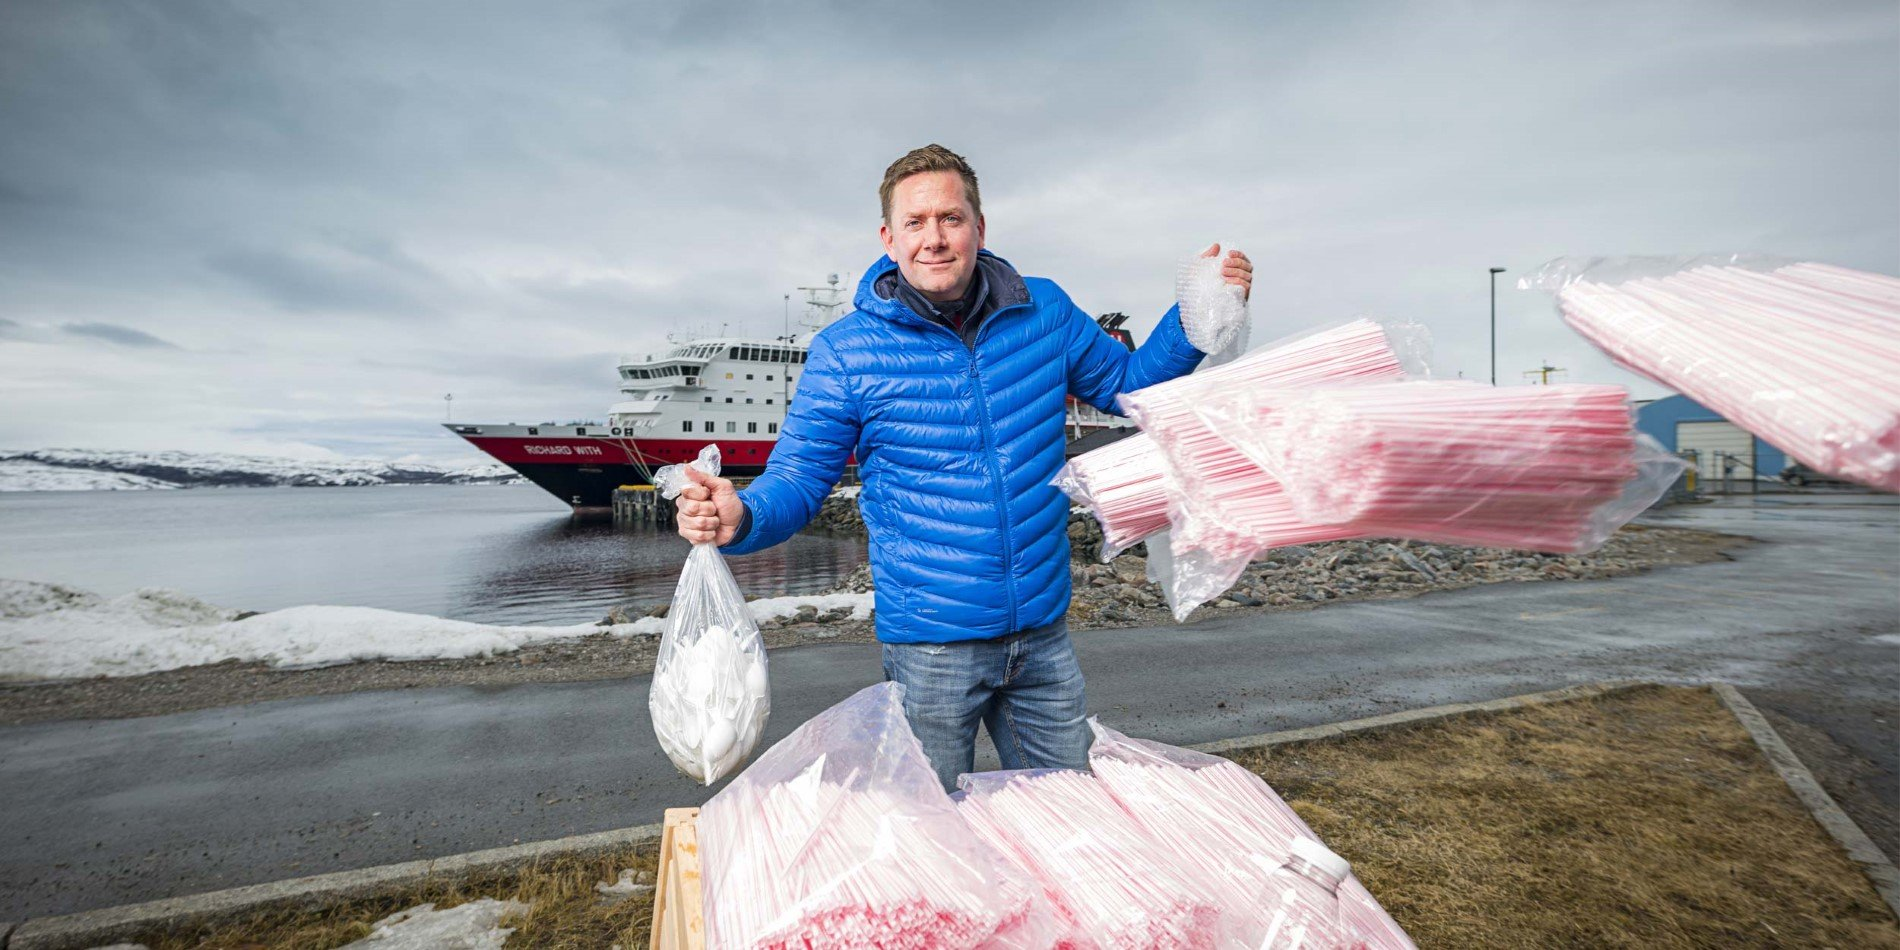 PLASTIC BAN: One million plastic straws a year are among the single use plastic items that will removed from all Hurtigruten ships this summer, as the company imposes a ban on single use plastic. Hurtigruten CEO Daniel Skjeldam, Hotel Manager Kristian Skar and rest of Hurtigruten employees are already removing plastic items from MS Richard With (in the background) and other Hurtigruten ships.